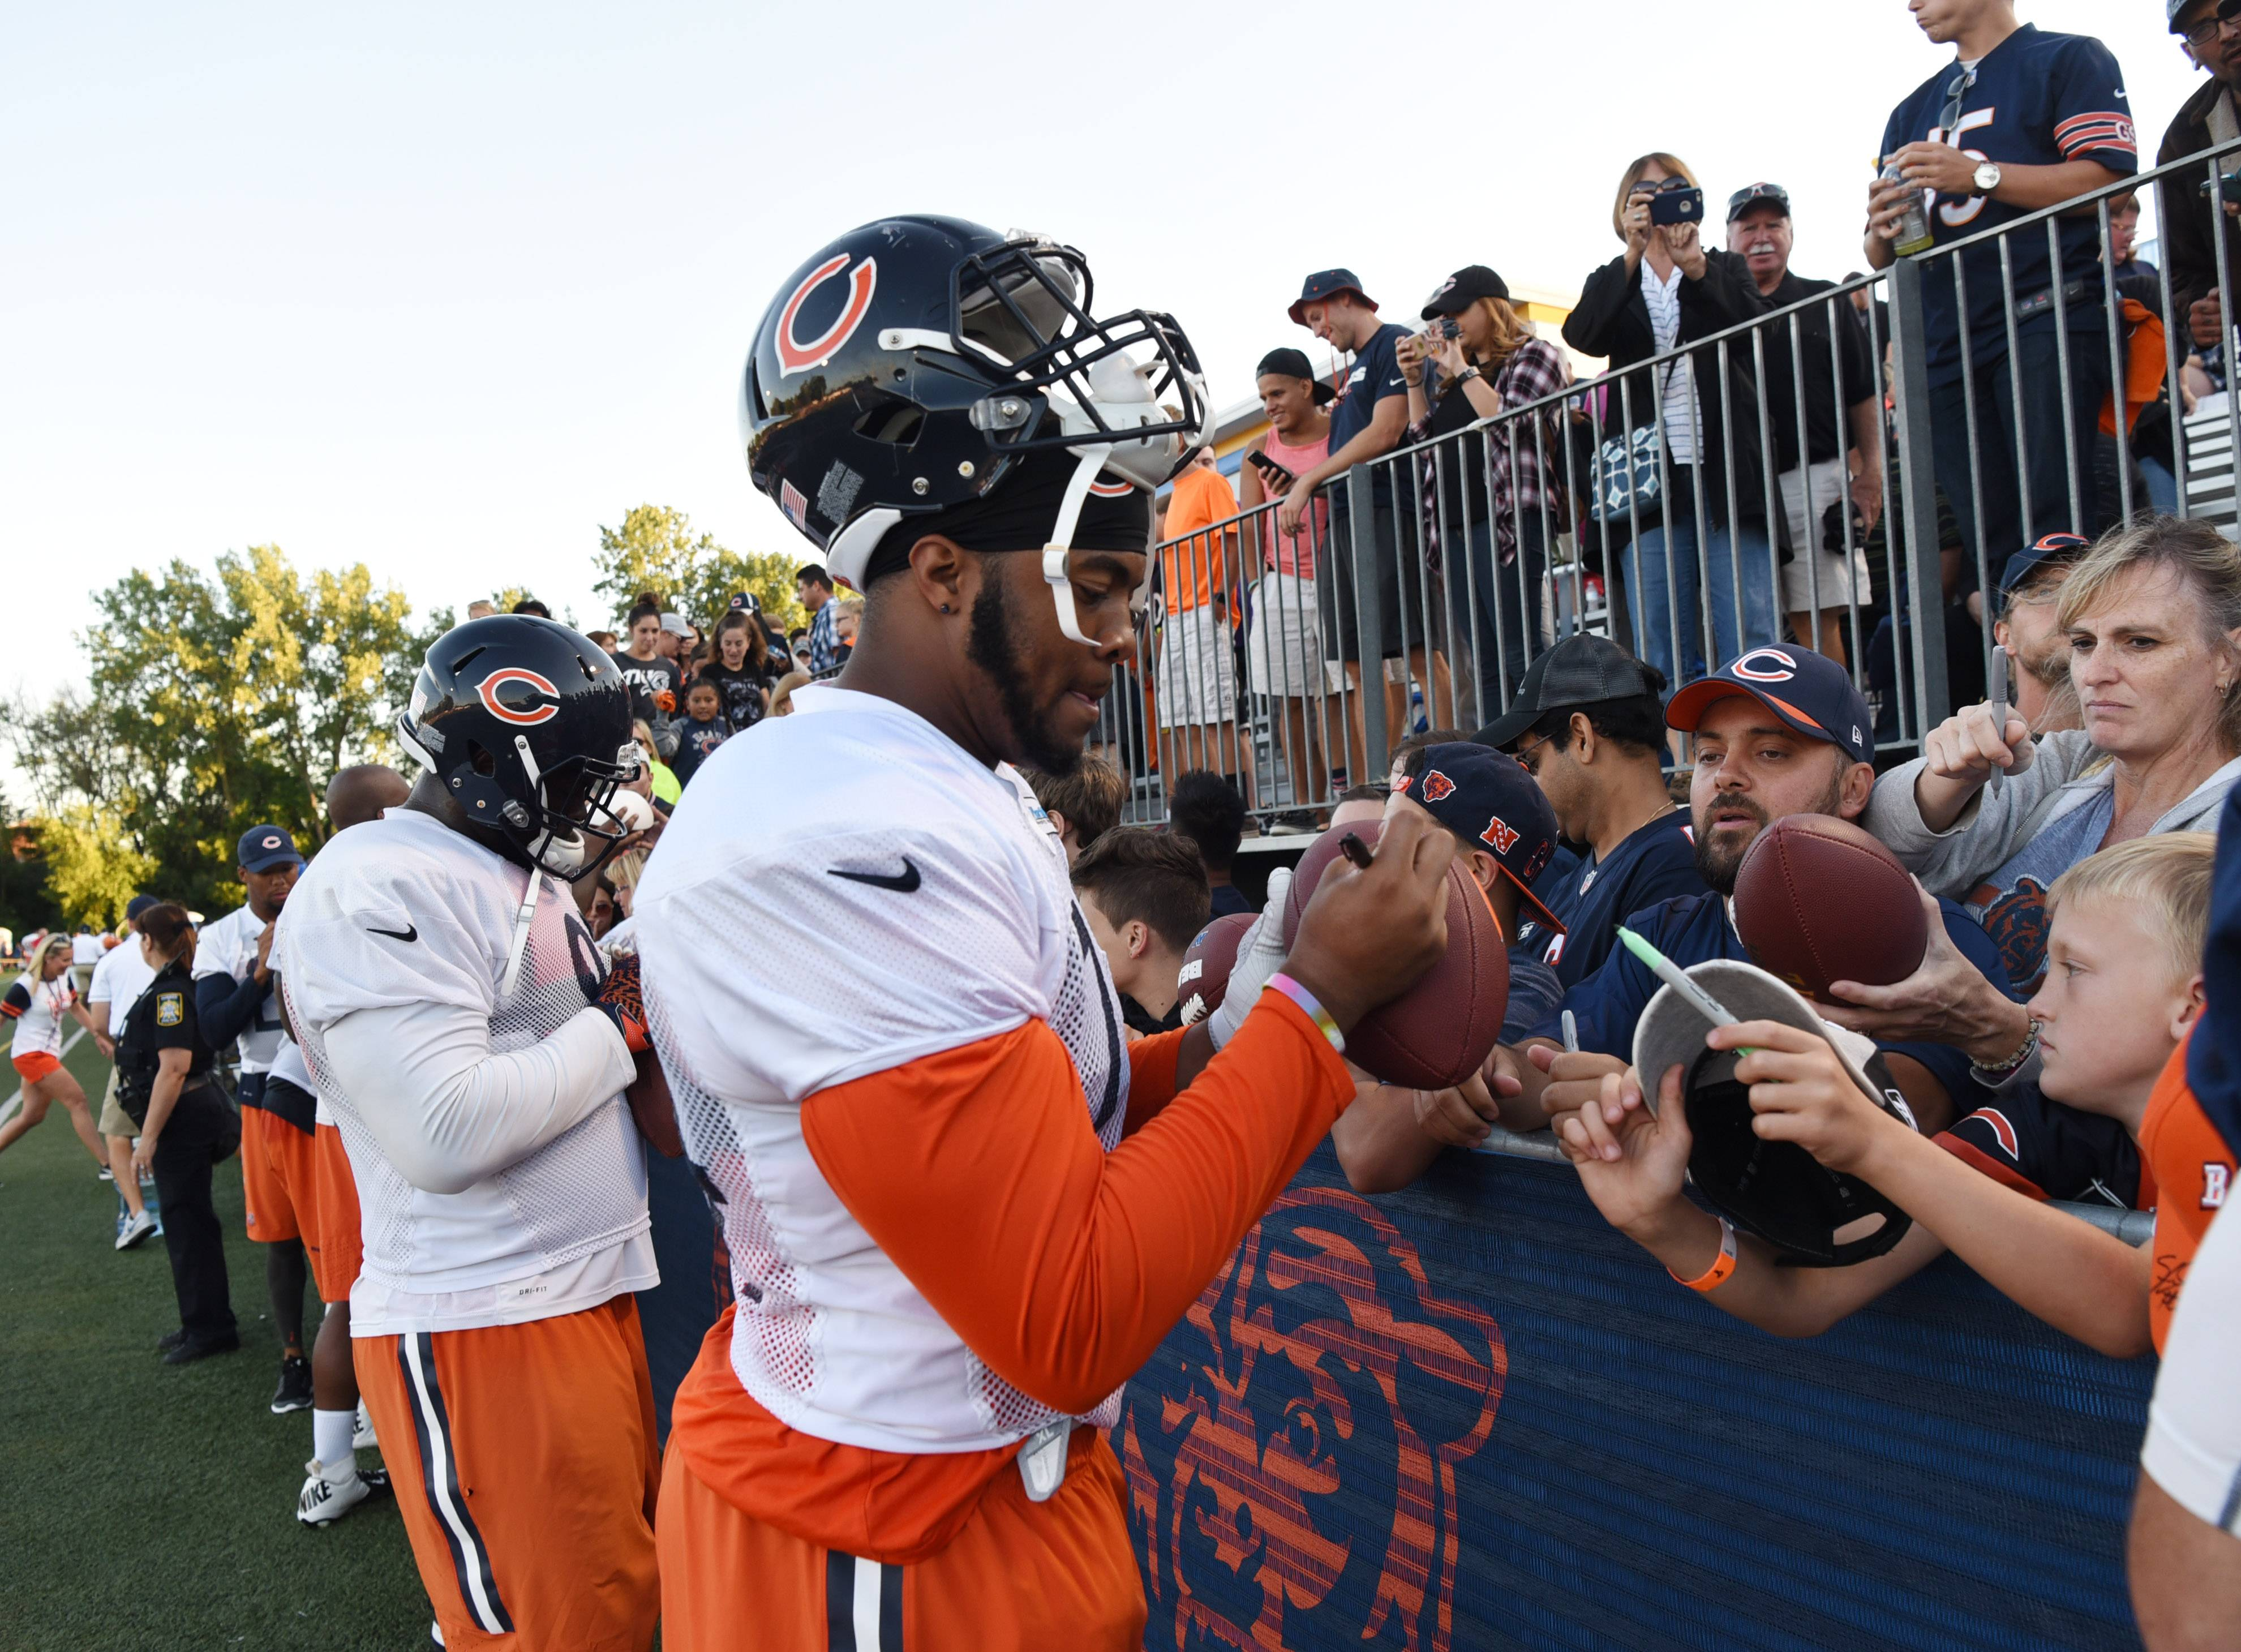 Defensive lineman Jonathan Bullard and teammates sign autographs for fans following a recent Chicago Bears practice at Warren High School in Gurnee.